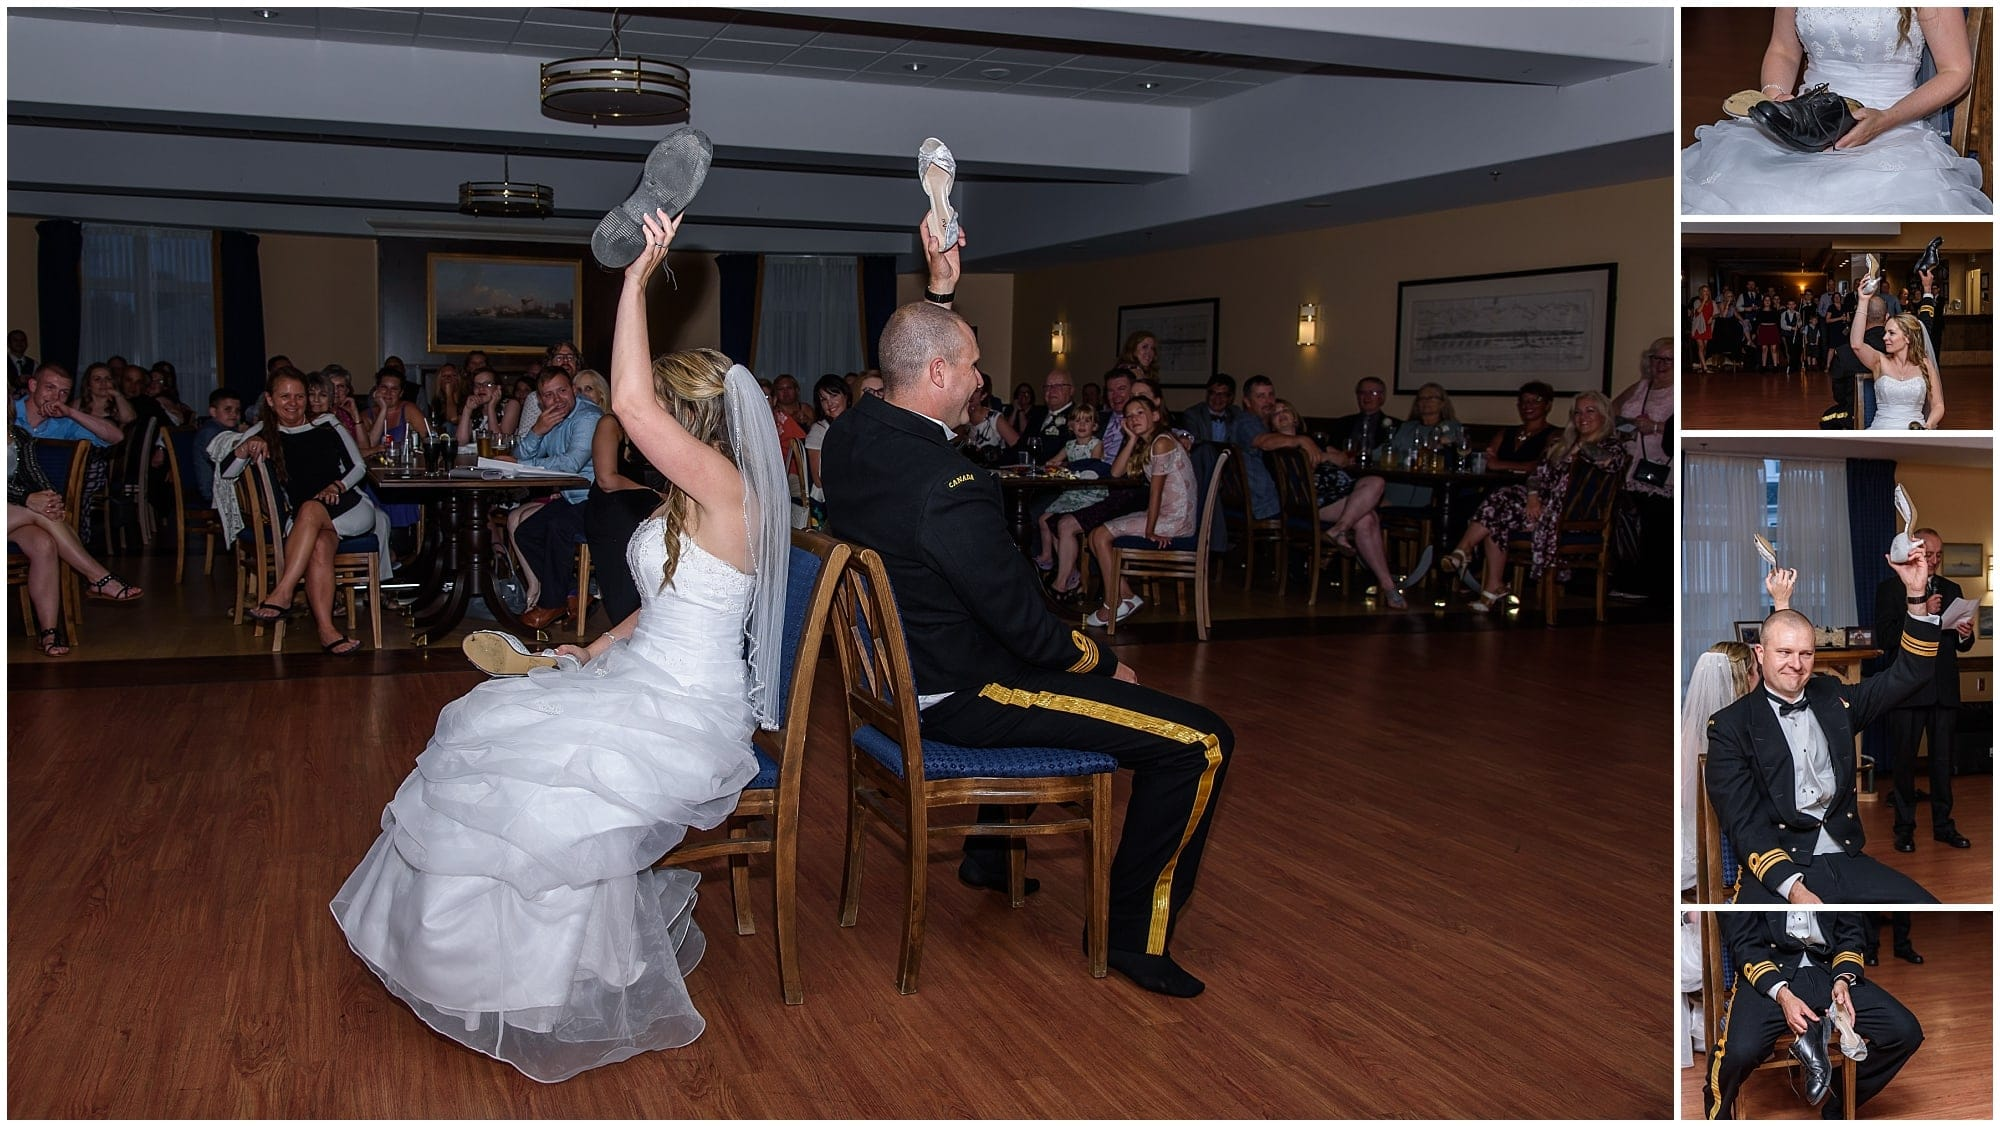 The bride and groom play the wedding shoe game during their reception at Juno Tower in Halifax, NS.